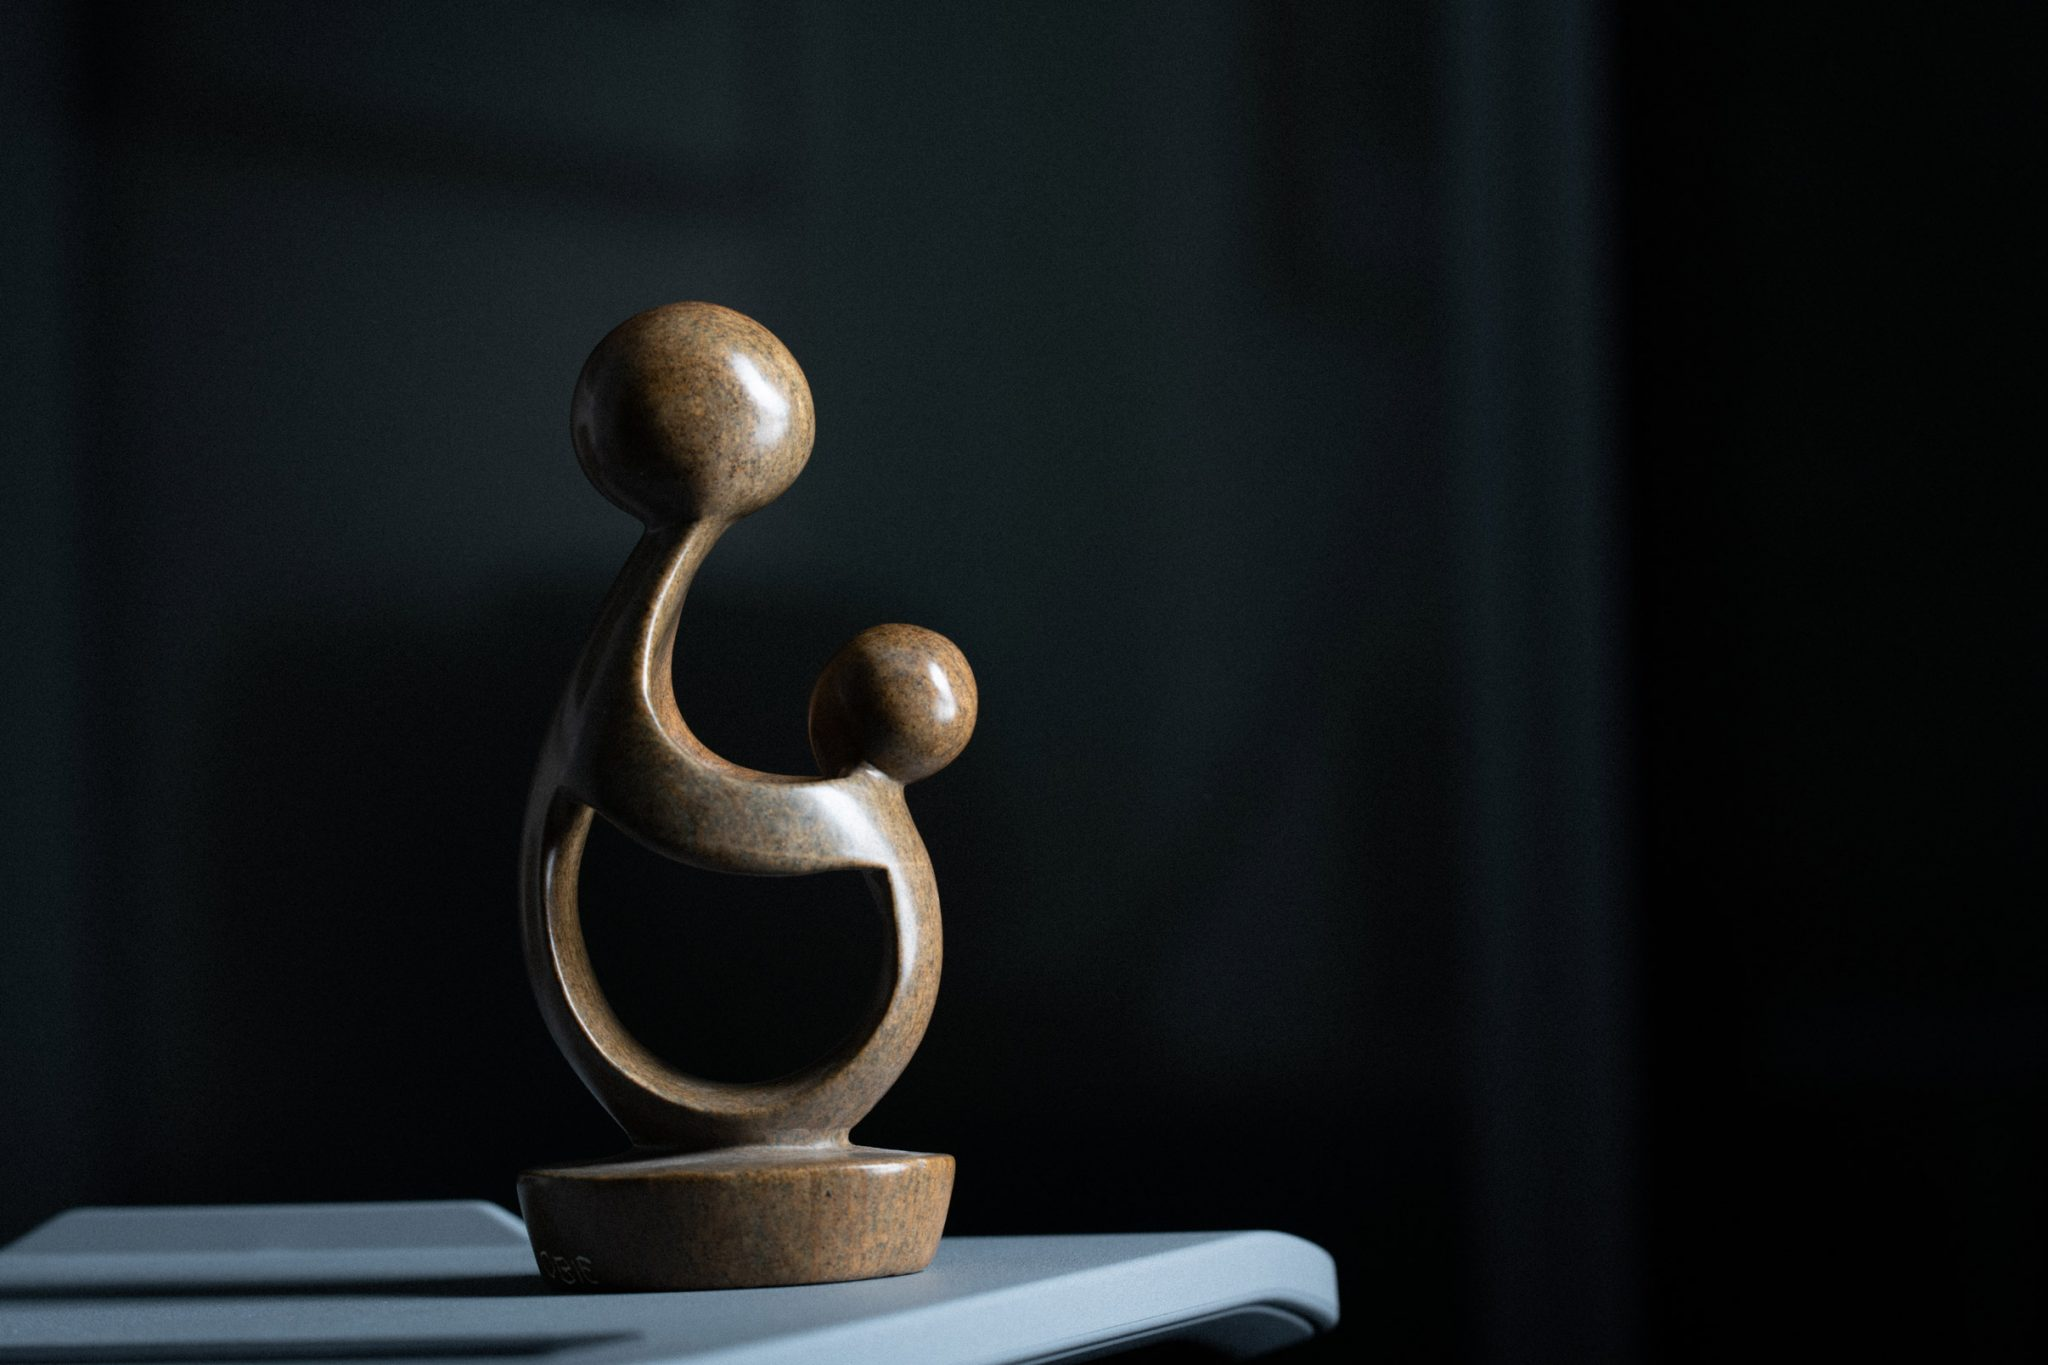 Chris's DAISY Award for Extraordinary Nursing, awarded in 2017. A brown, curving, abstract sculpture of two figures that might be interpreted as one large figure helping a smaller figure.